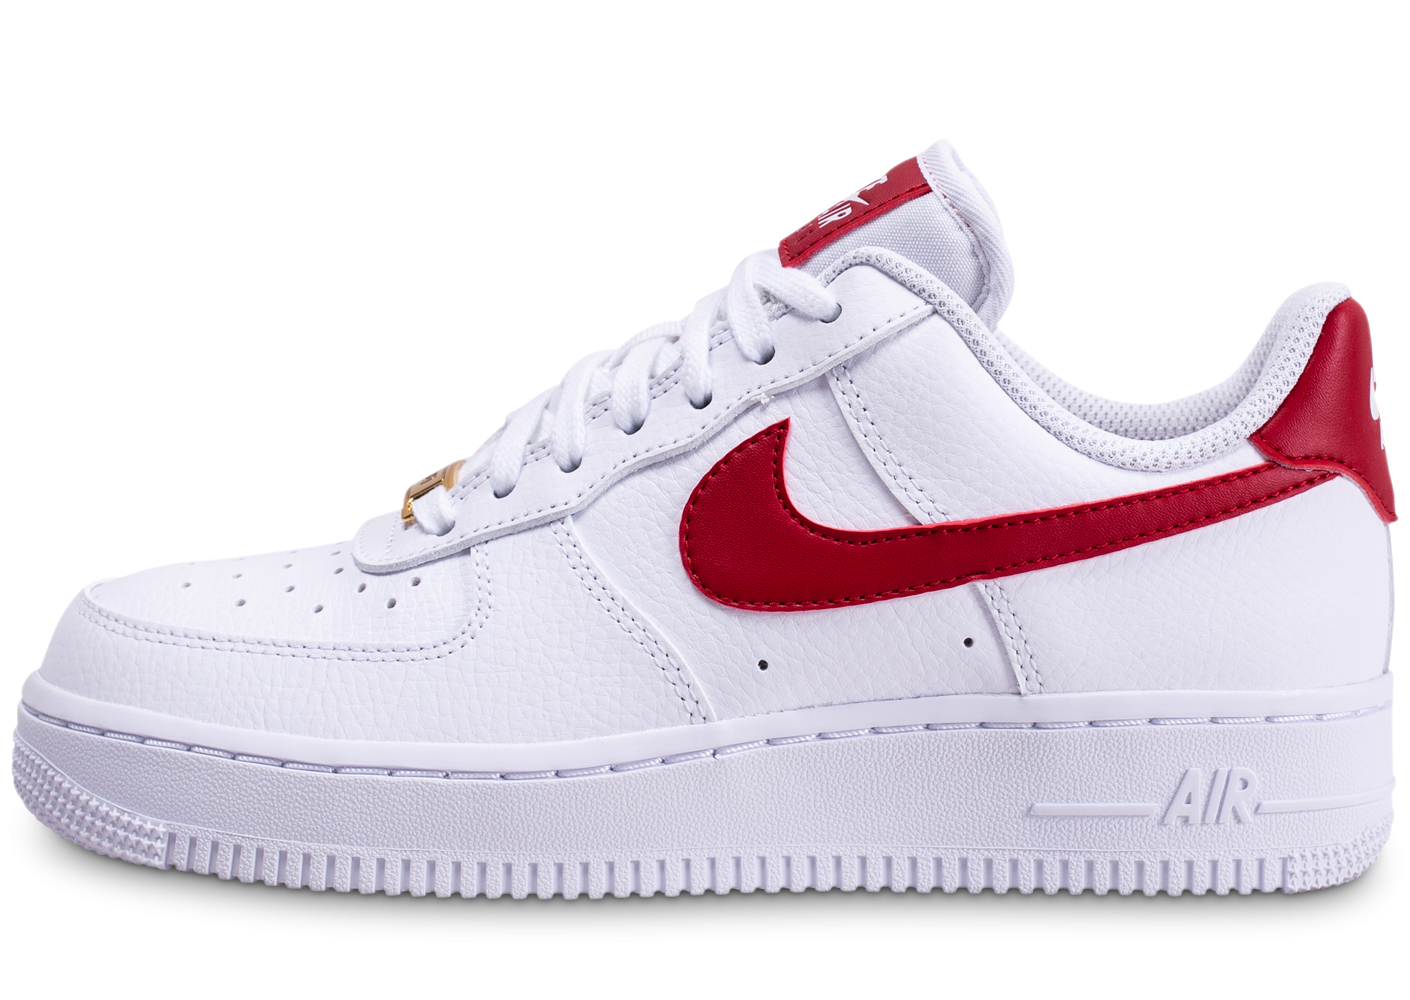 air force 1 femme blanche rouge